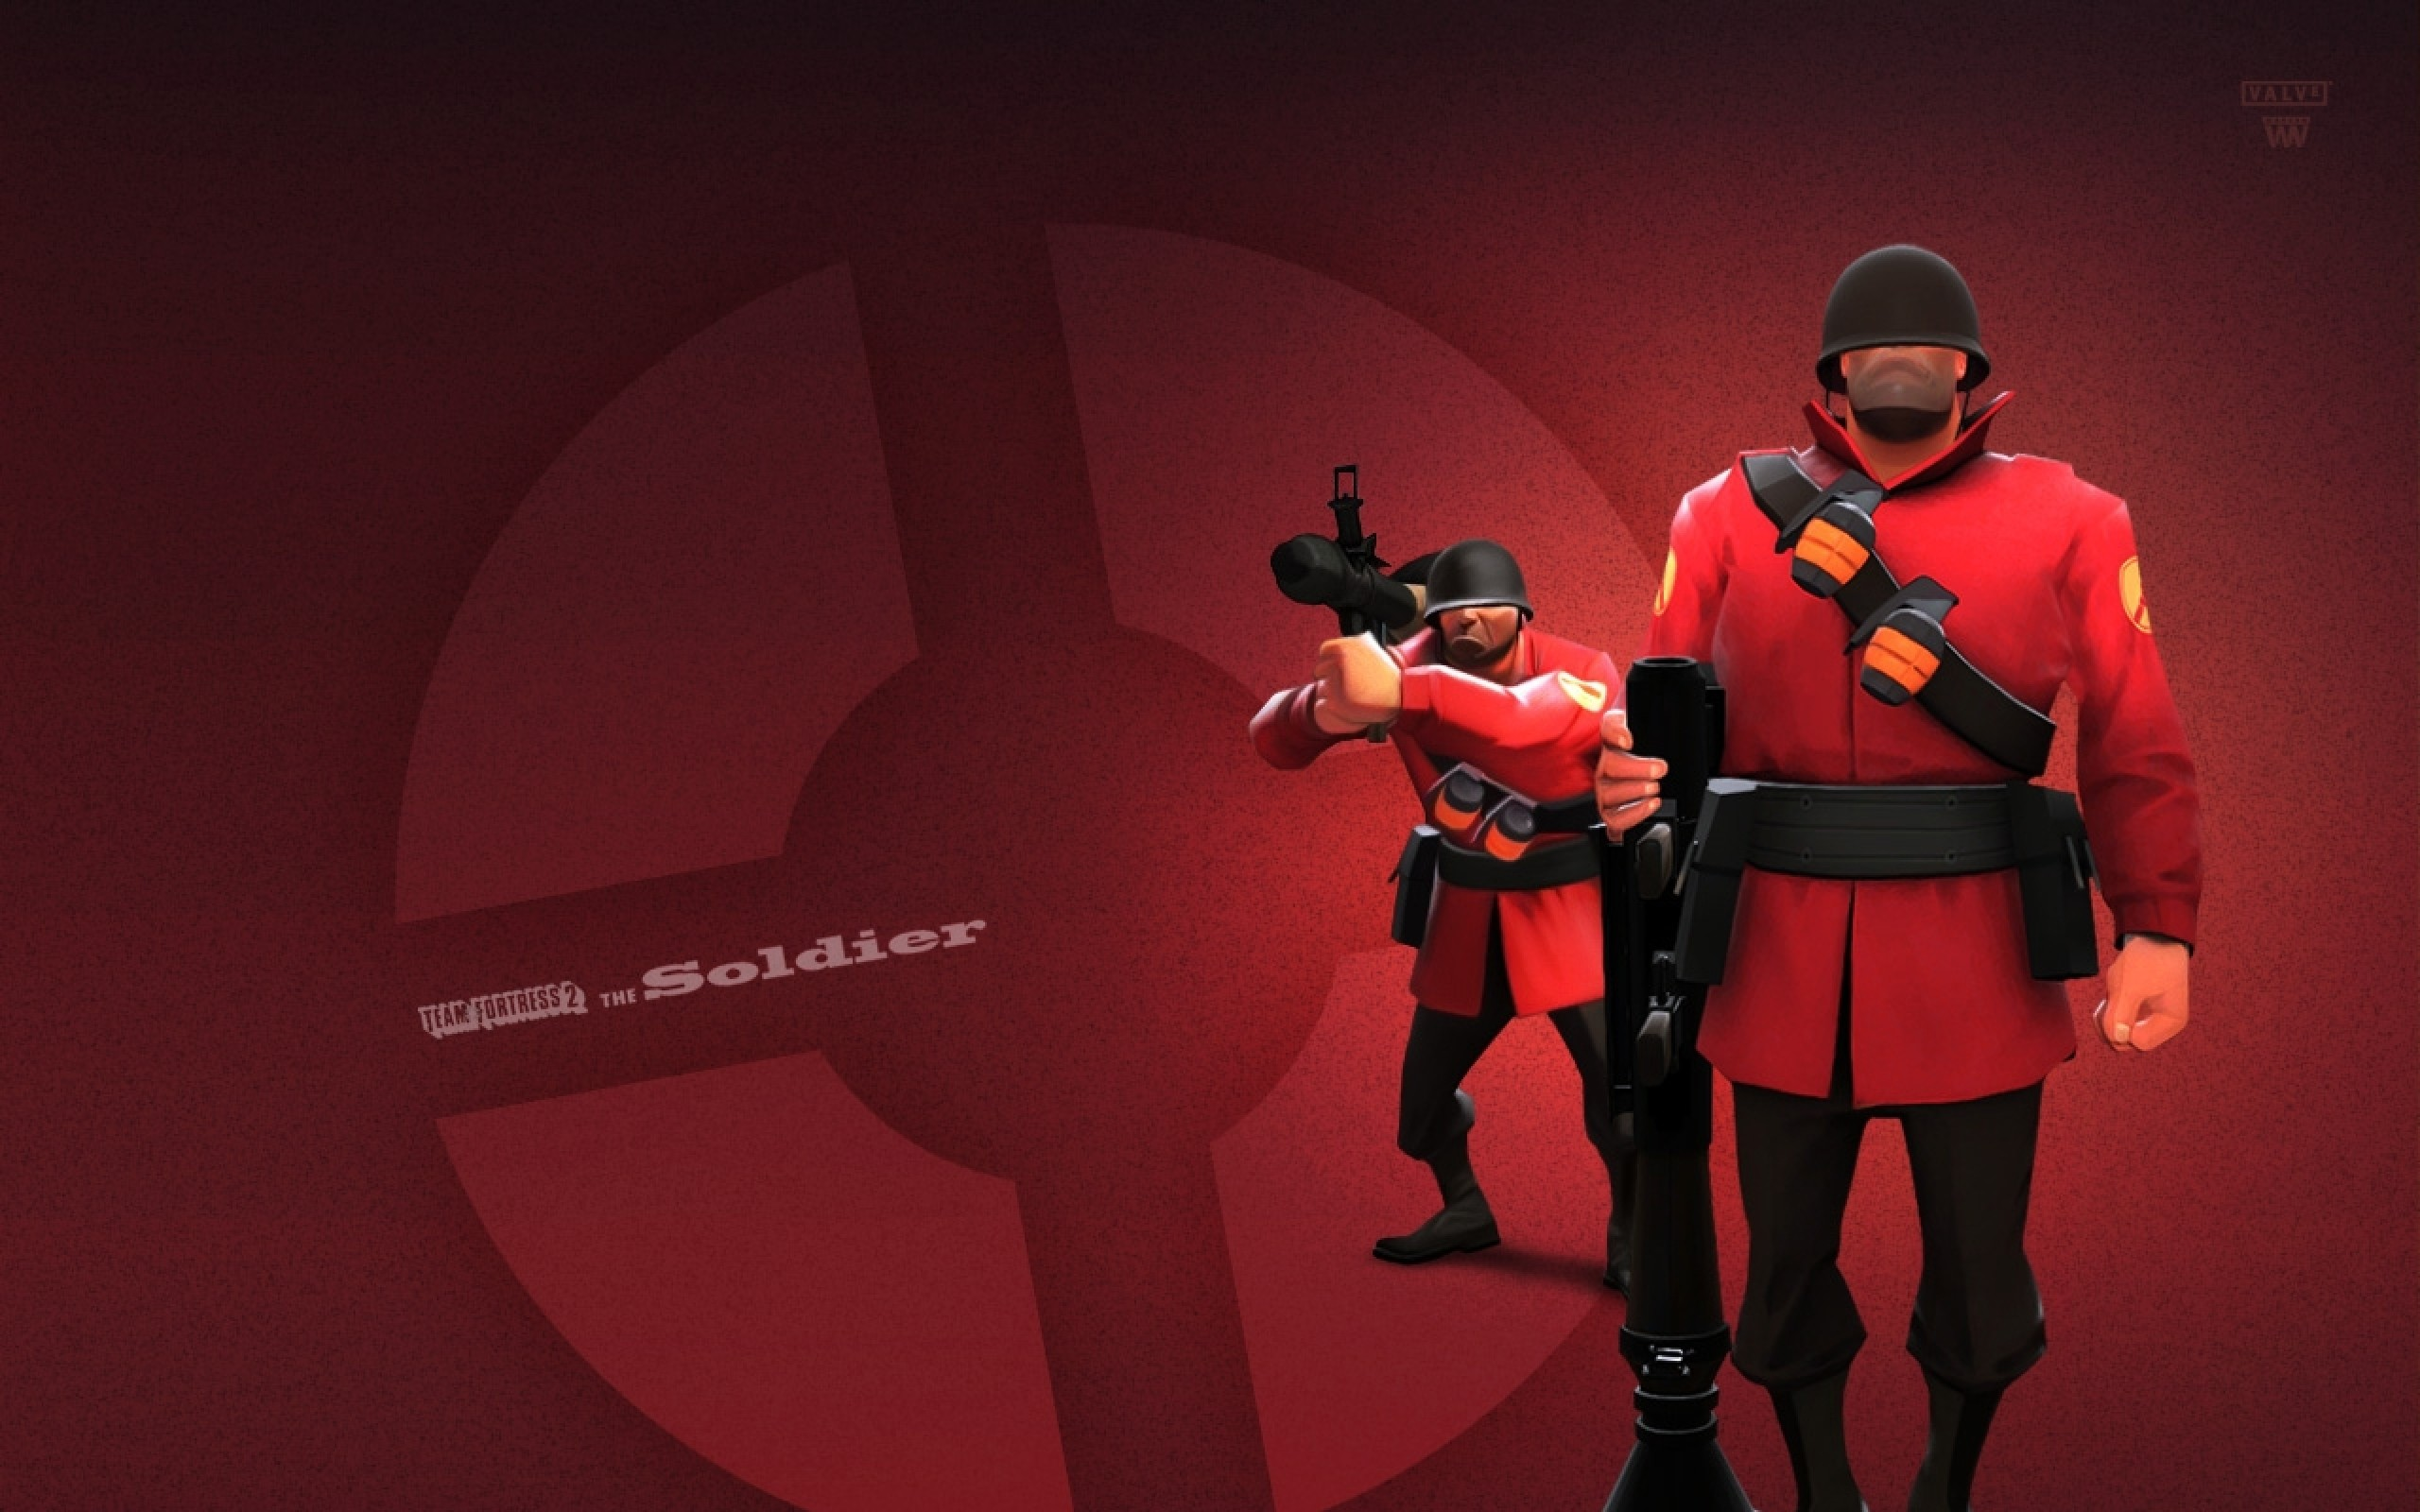 2560x1600 video games team fortress 2 soldier tf2 Wallpaper HD